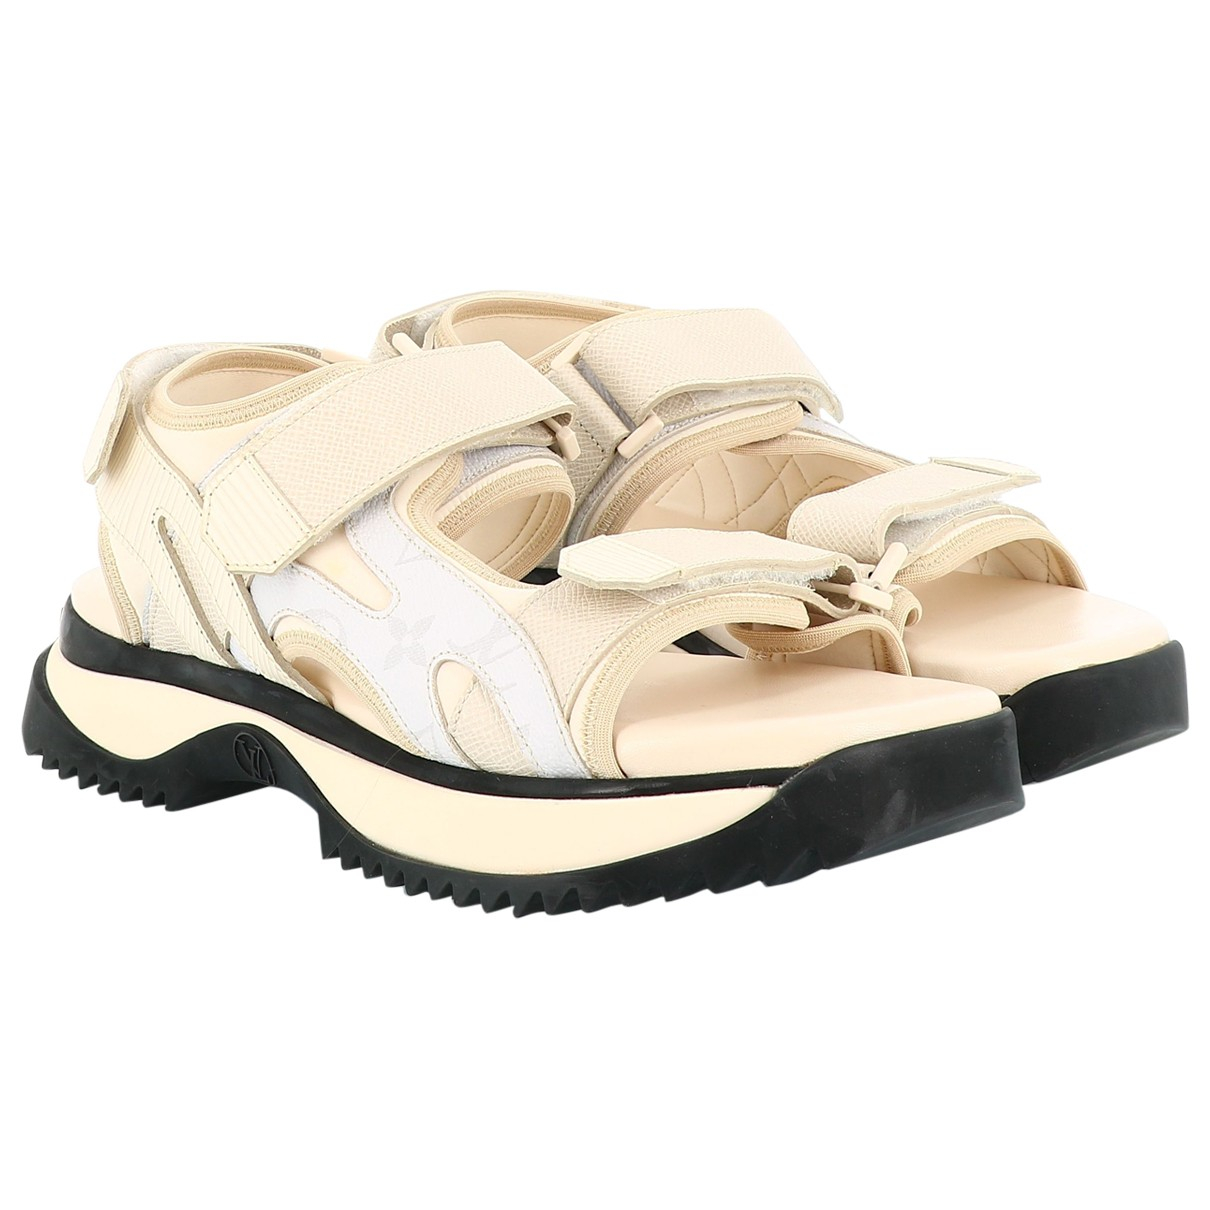 Louis Vuitton \N Beige Leather Sandals for Women 42.5 EU